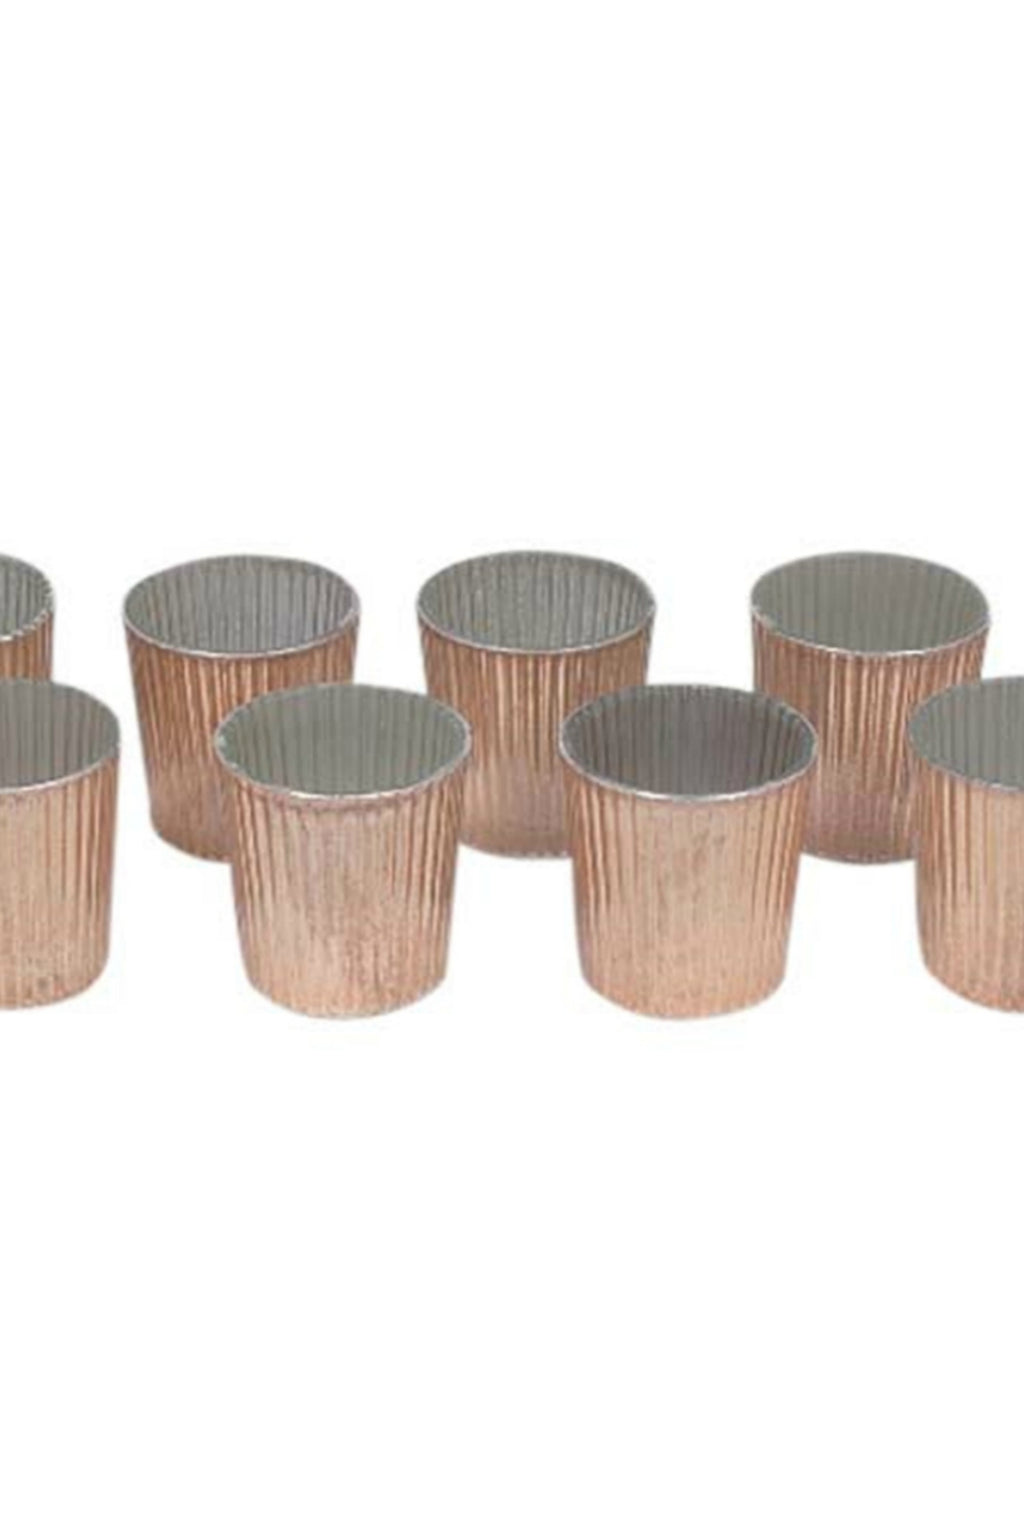 BIDK Home Copper Finish Mercury Glass Votives